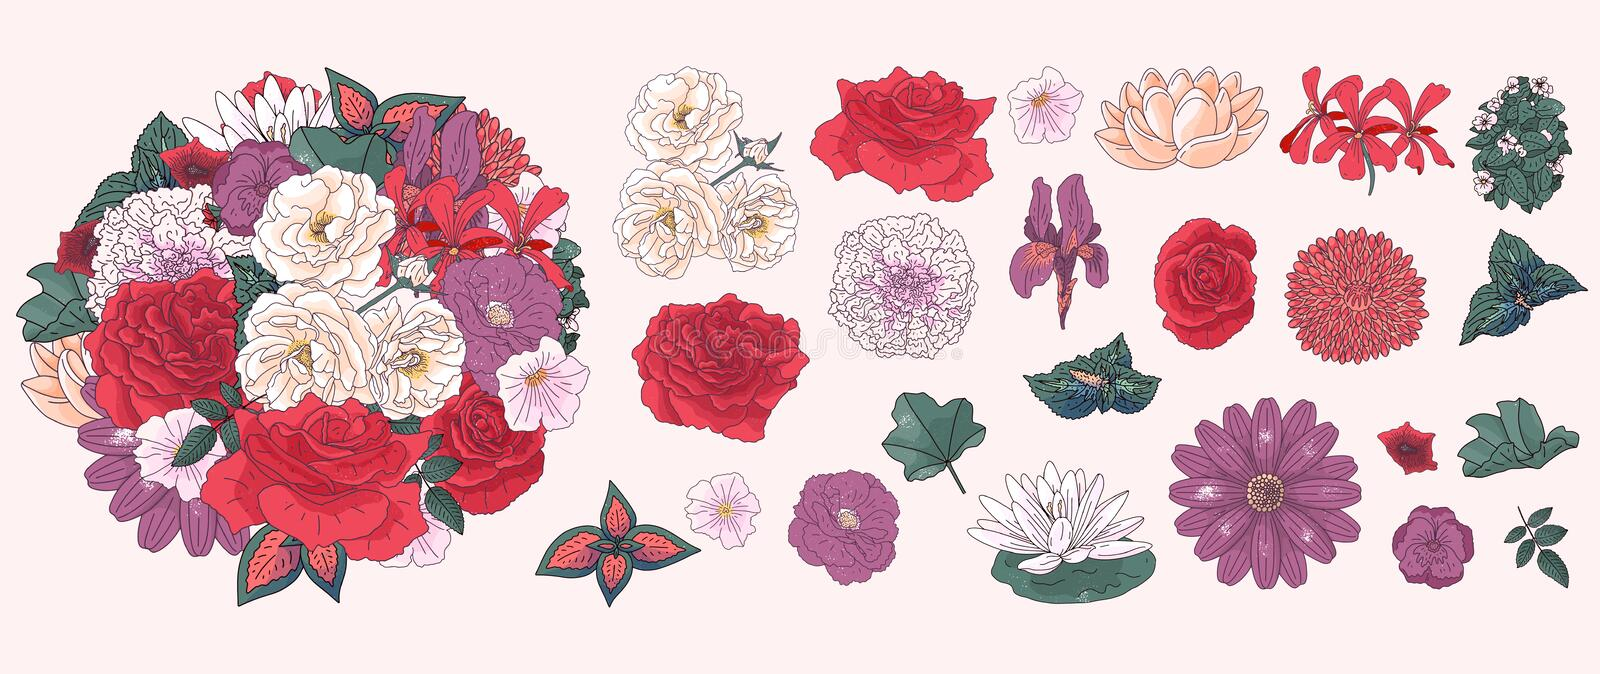 Set of different flowers in doodle style. Hand drawn elements for wedding floral design, vector illustration. Spring blossom stock images